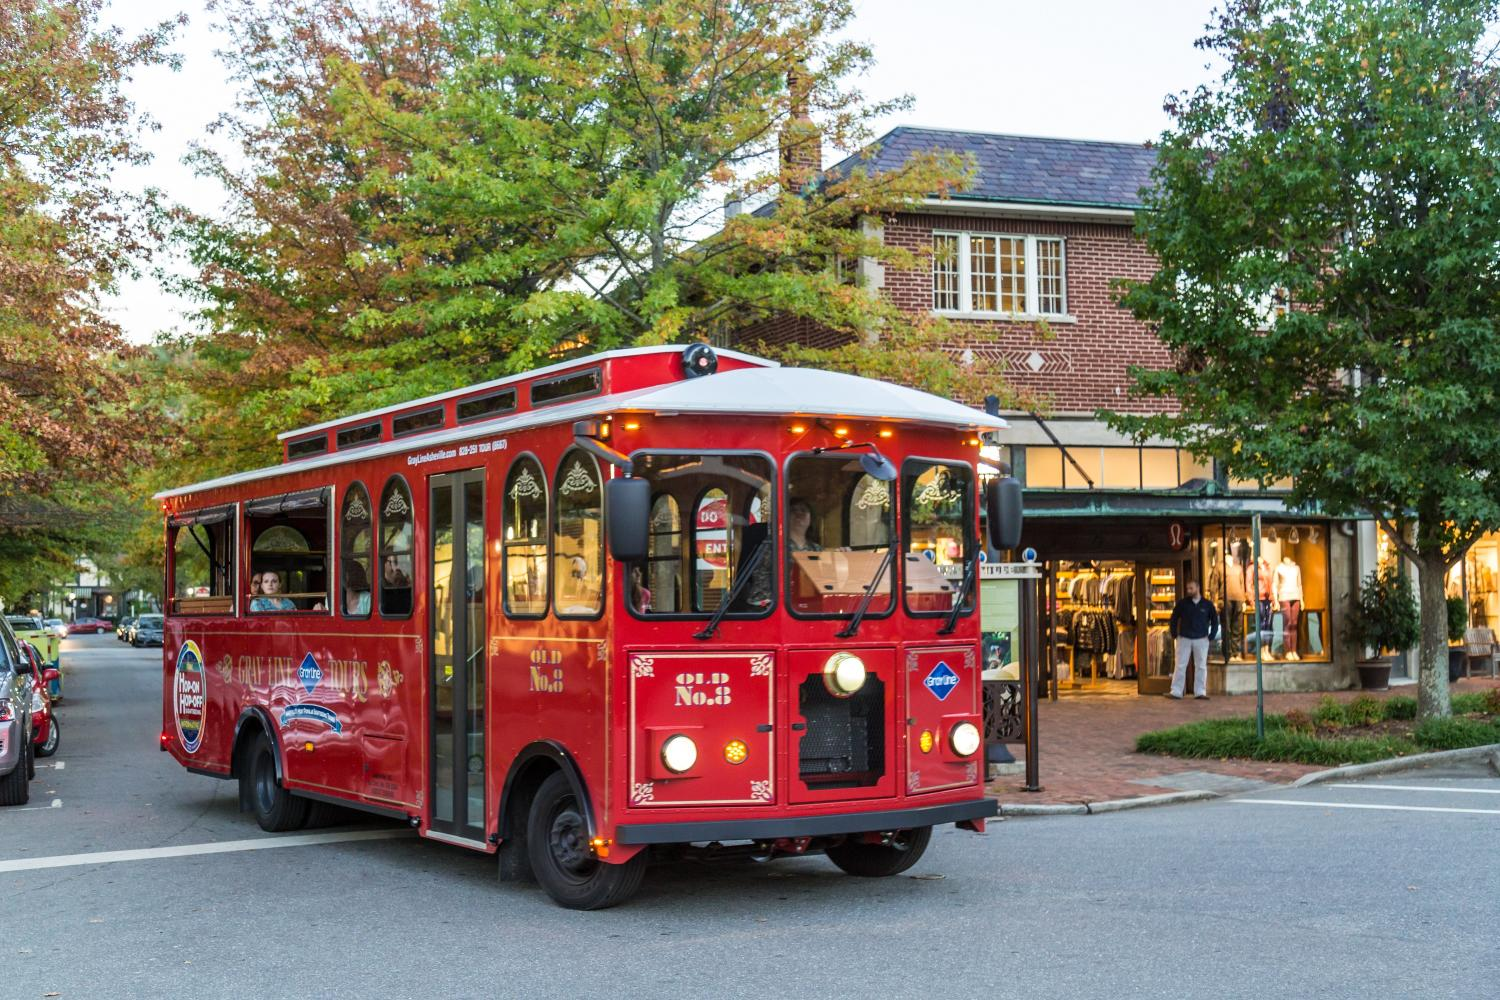 Discover the quaint city of Asheville by trolley